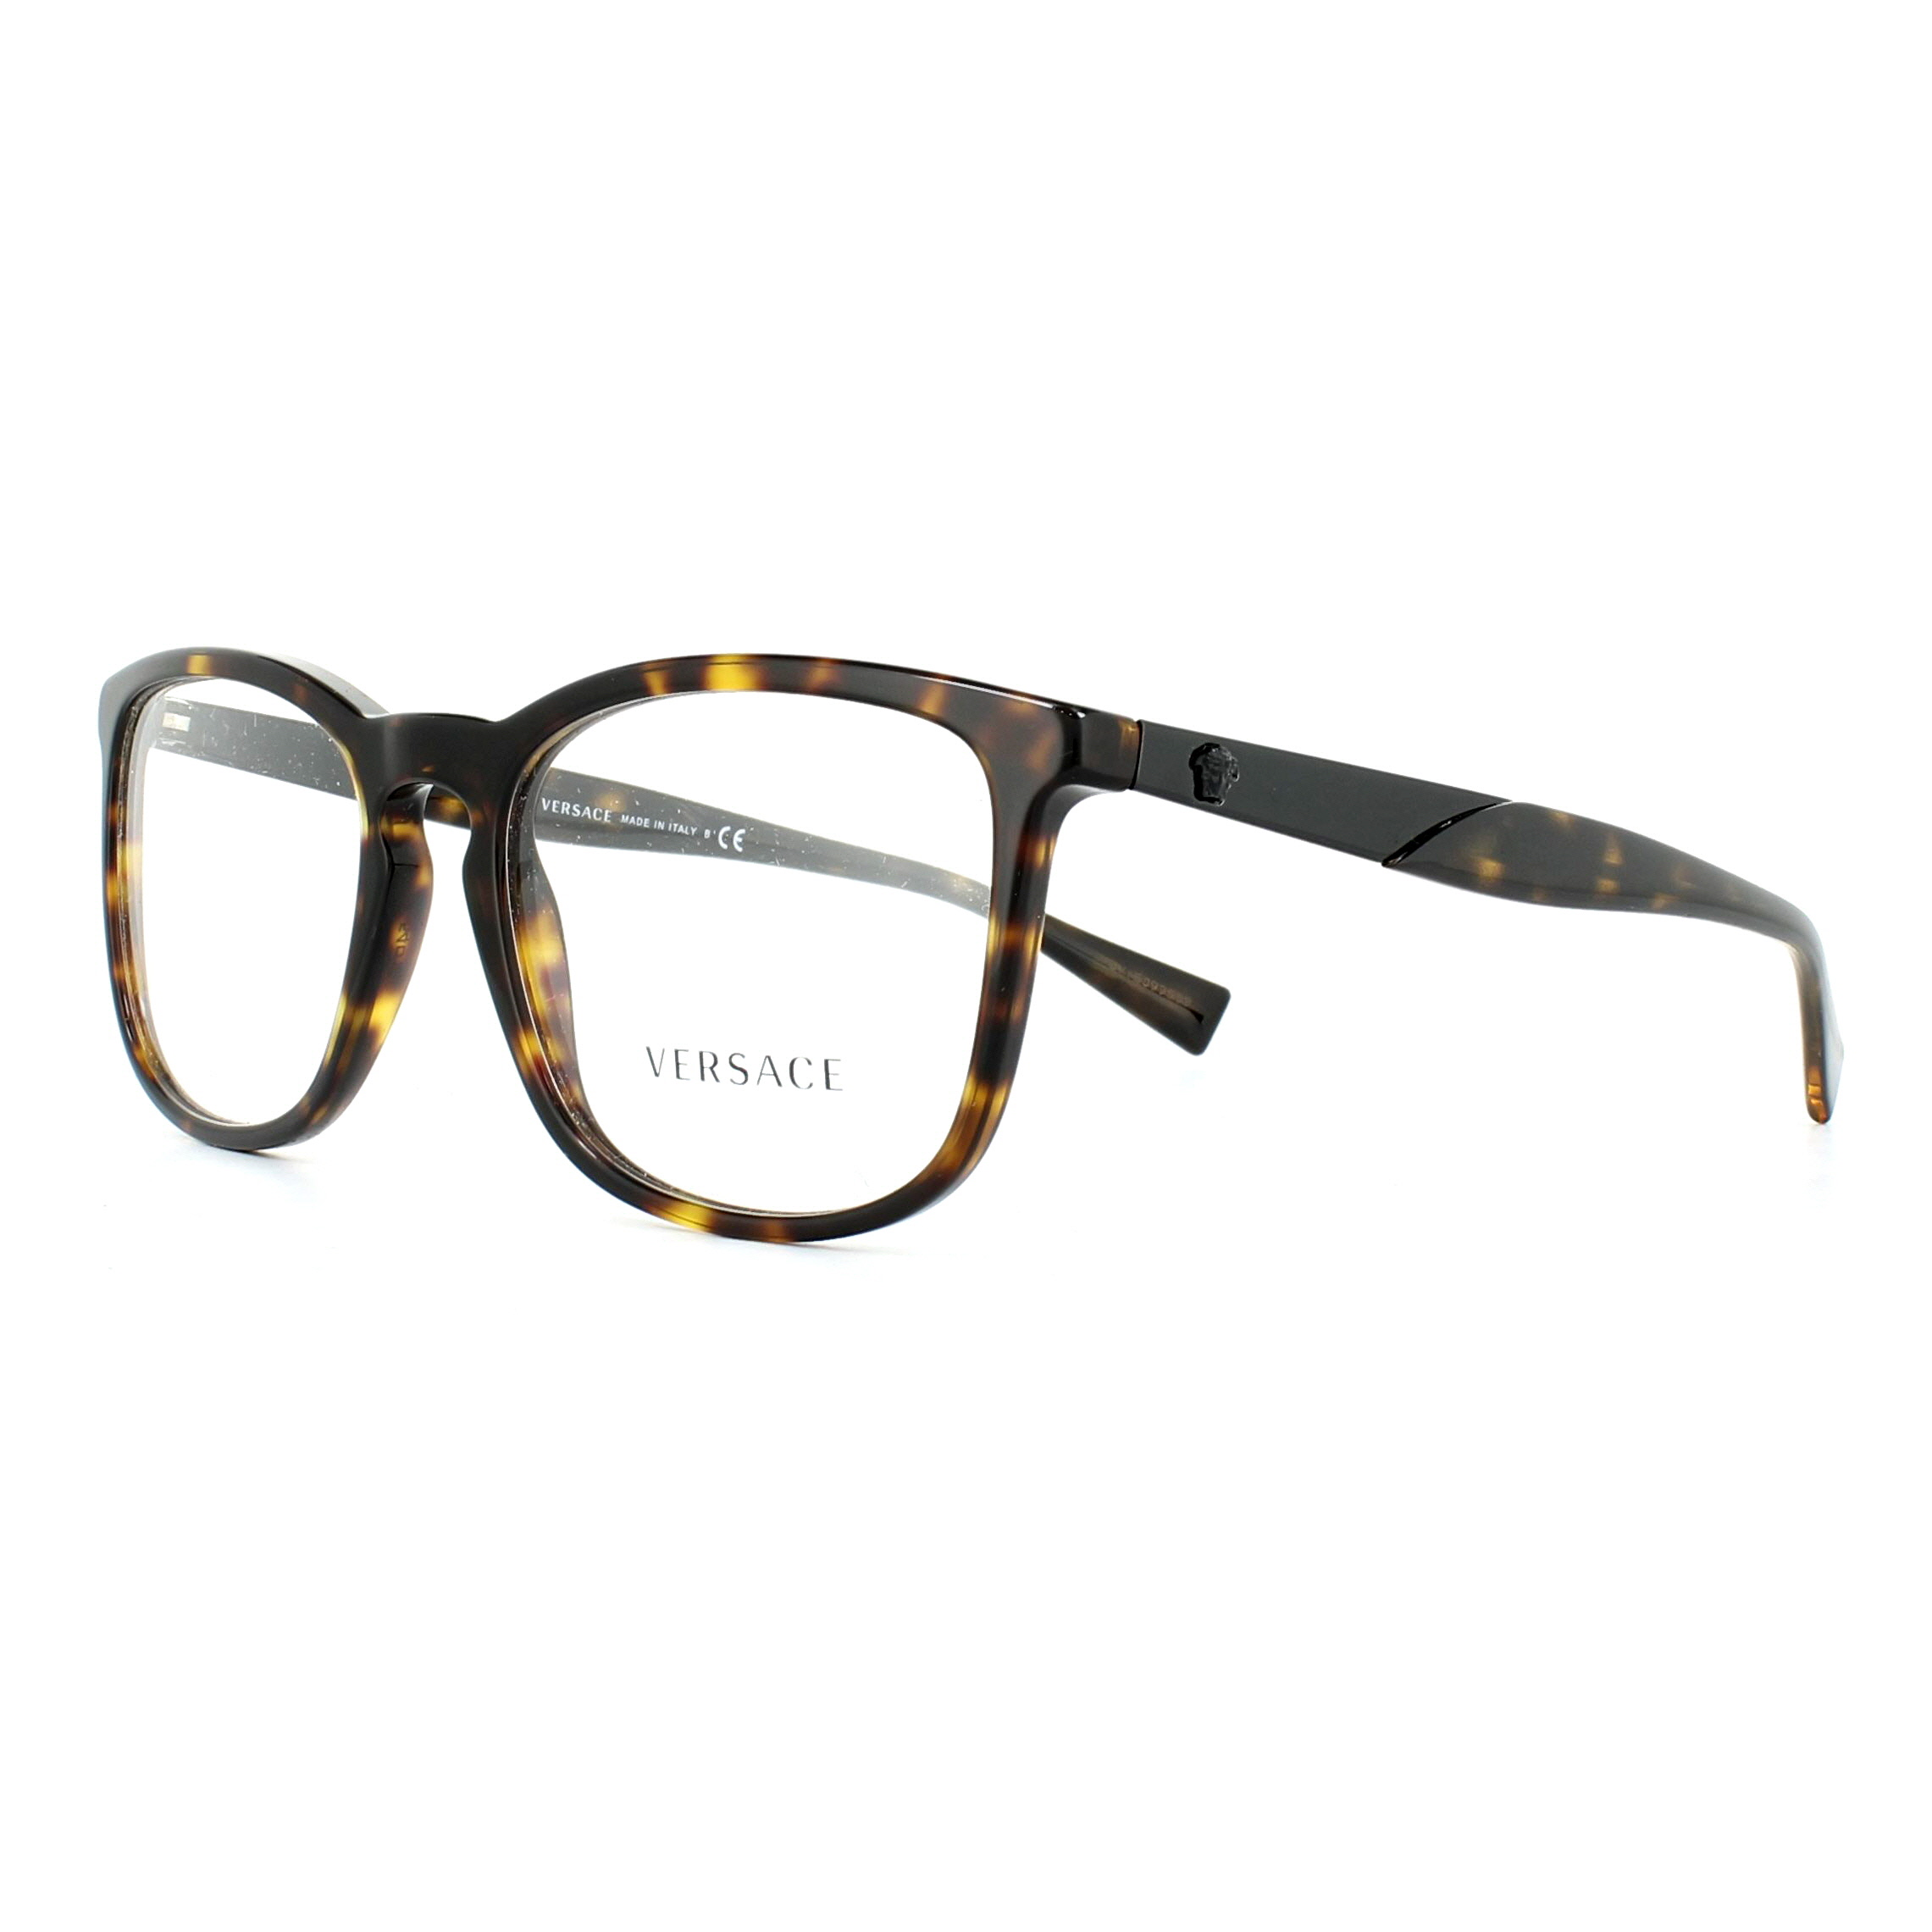 a880935818 Sentinel versace glasses frames dark havana mens womens jpg 2281x2281 Versace  mens glasses